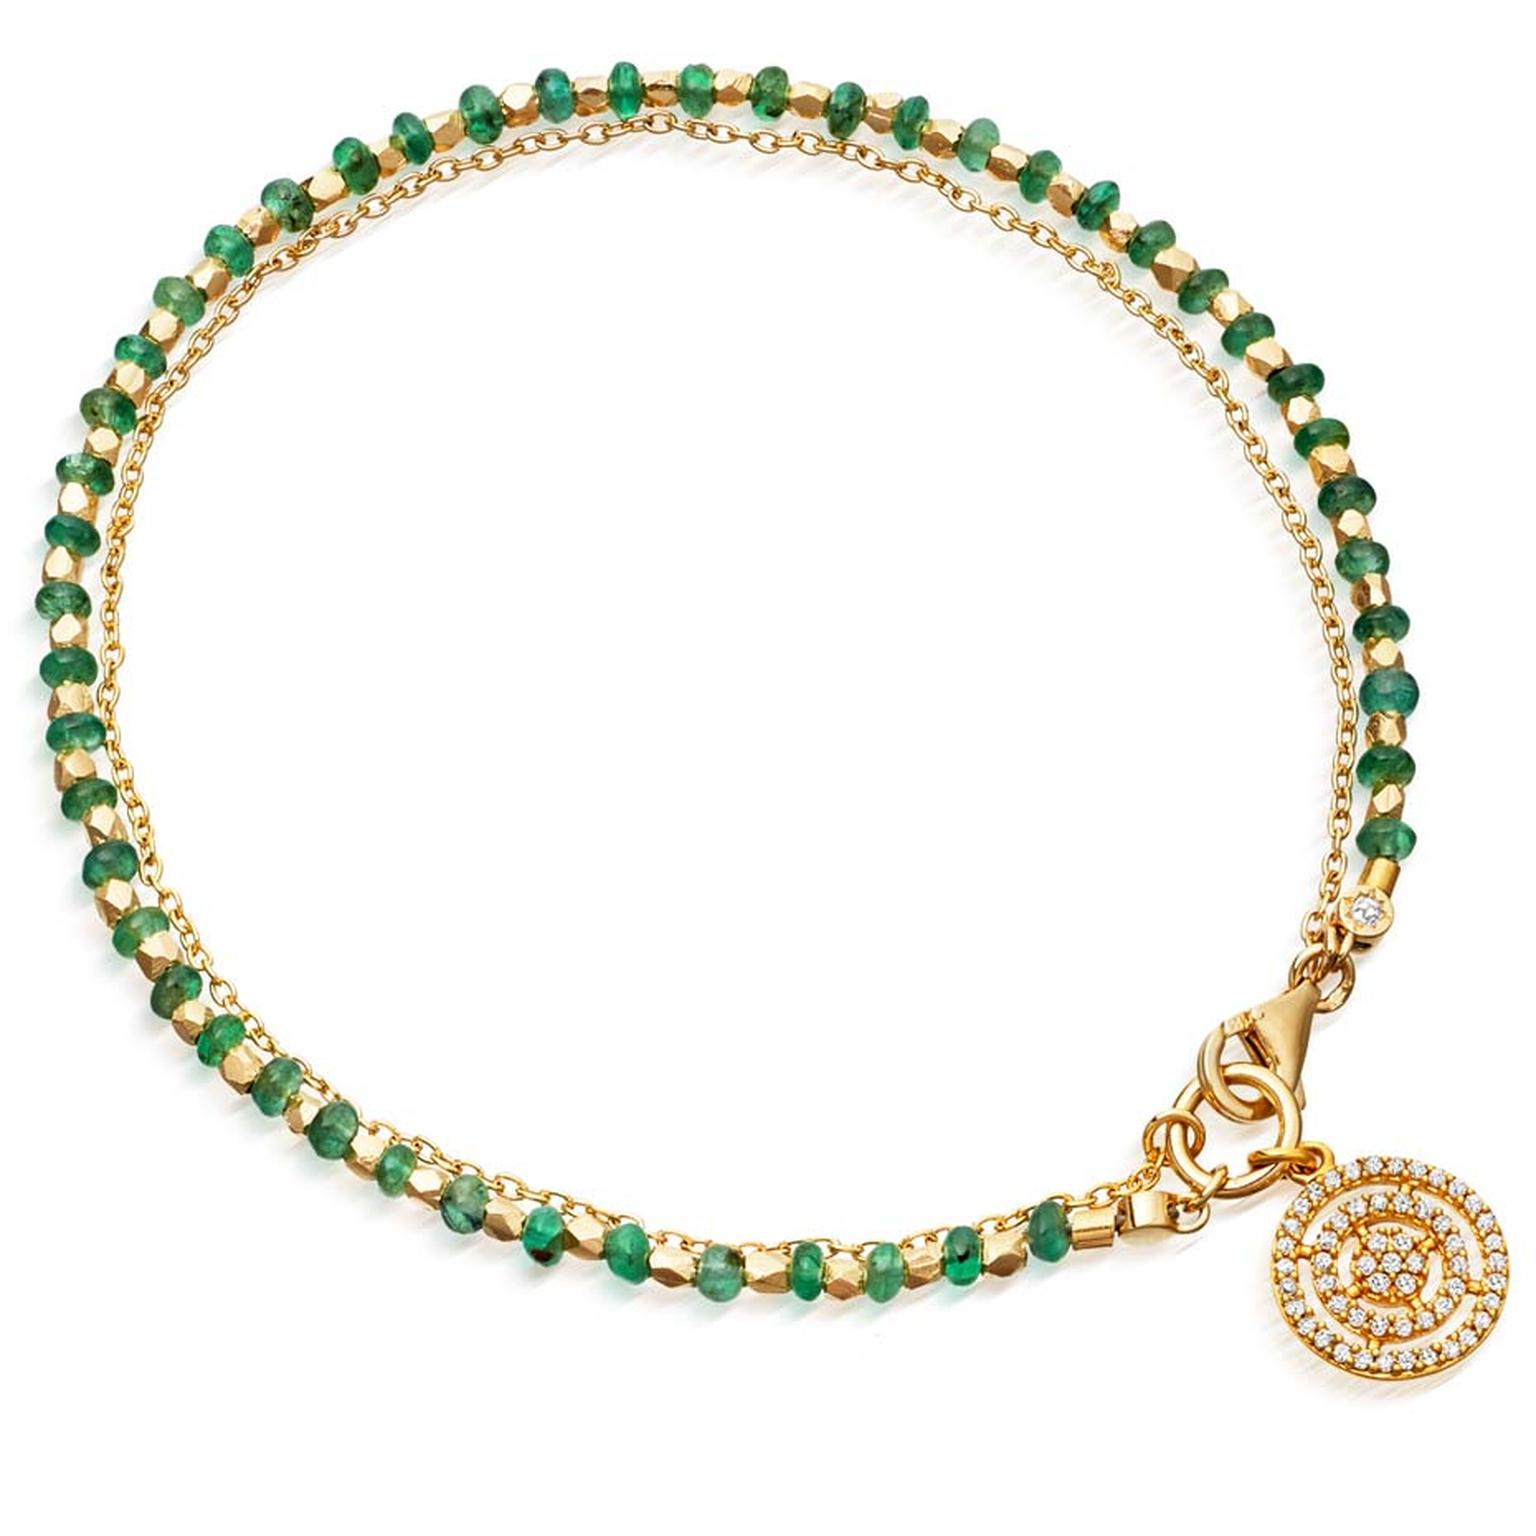 Astley Clarke's new Fine biography collection combines their most iconic talismans with exquisite gemstones, like this Emerald Aura bracelet.